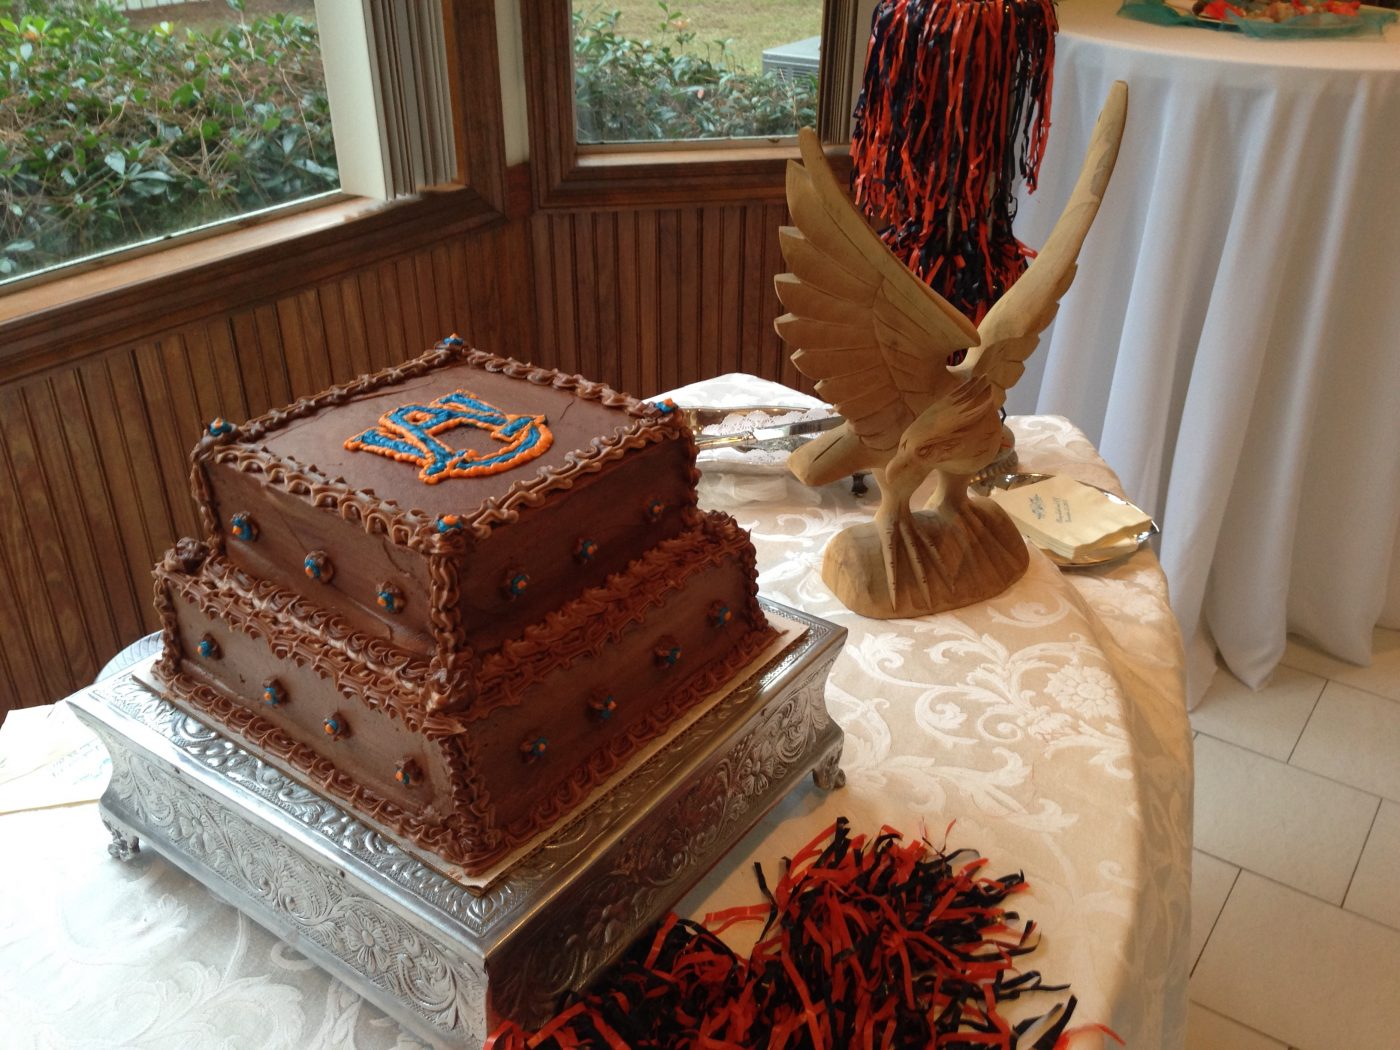 Auburn themed groom's cake